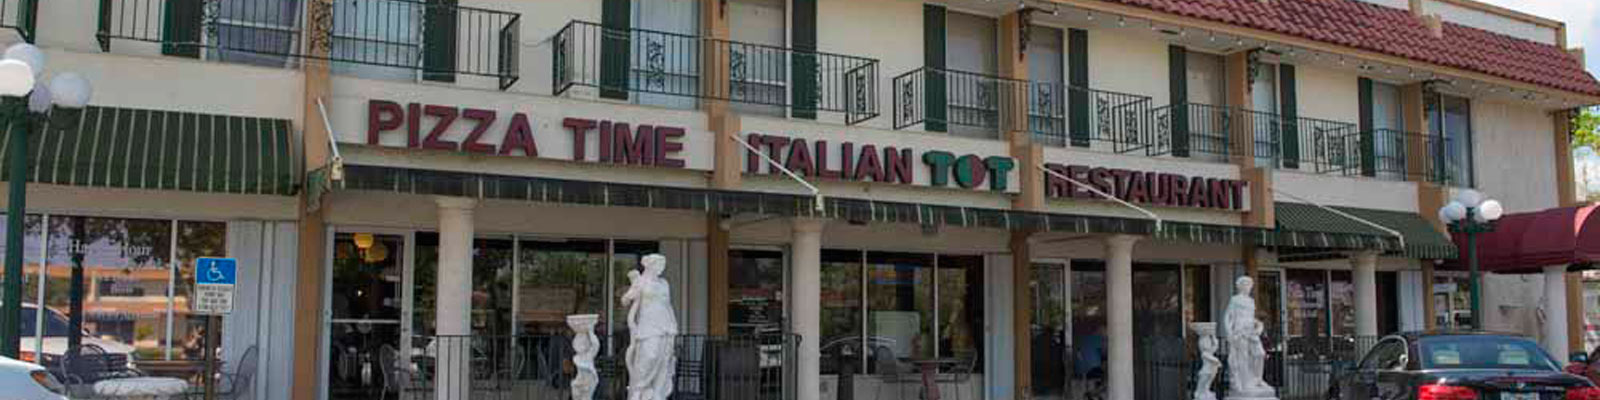 Pizza Time Italian Restaurant